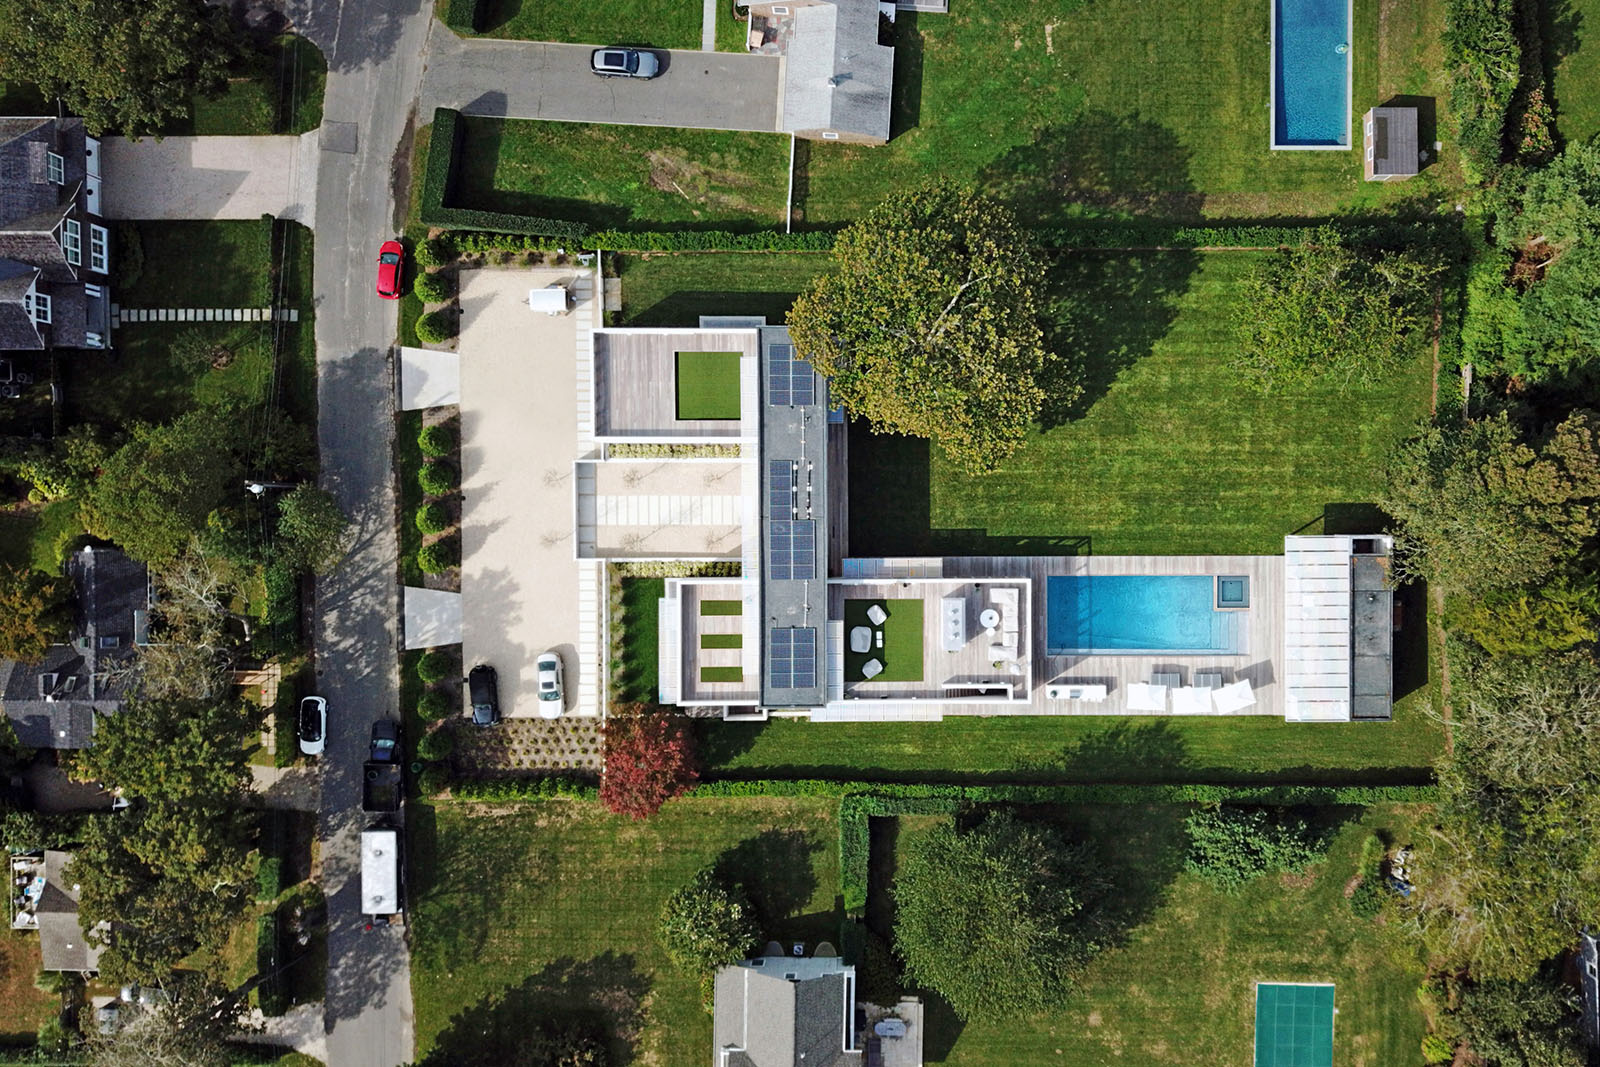 60-re4a-resolution-4-architecture-modern-modular-prefab-bridgehampton house-drone-overhead-plan.jpg